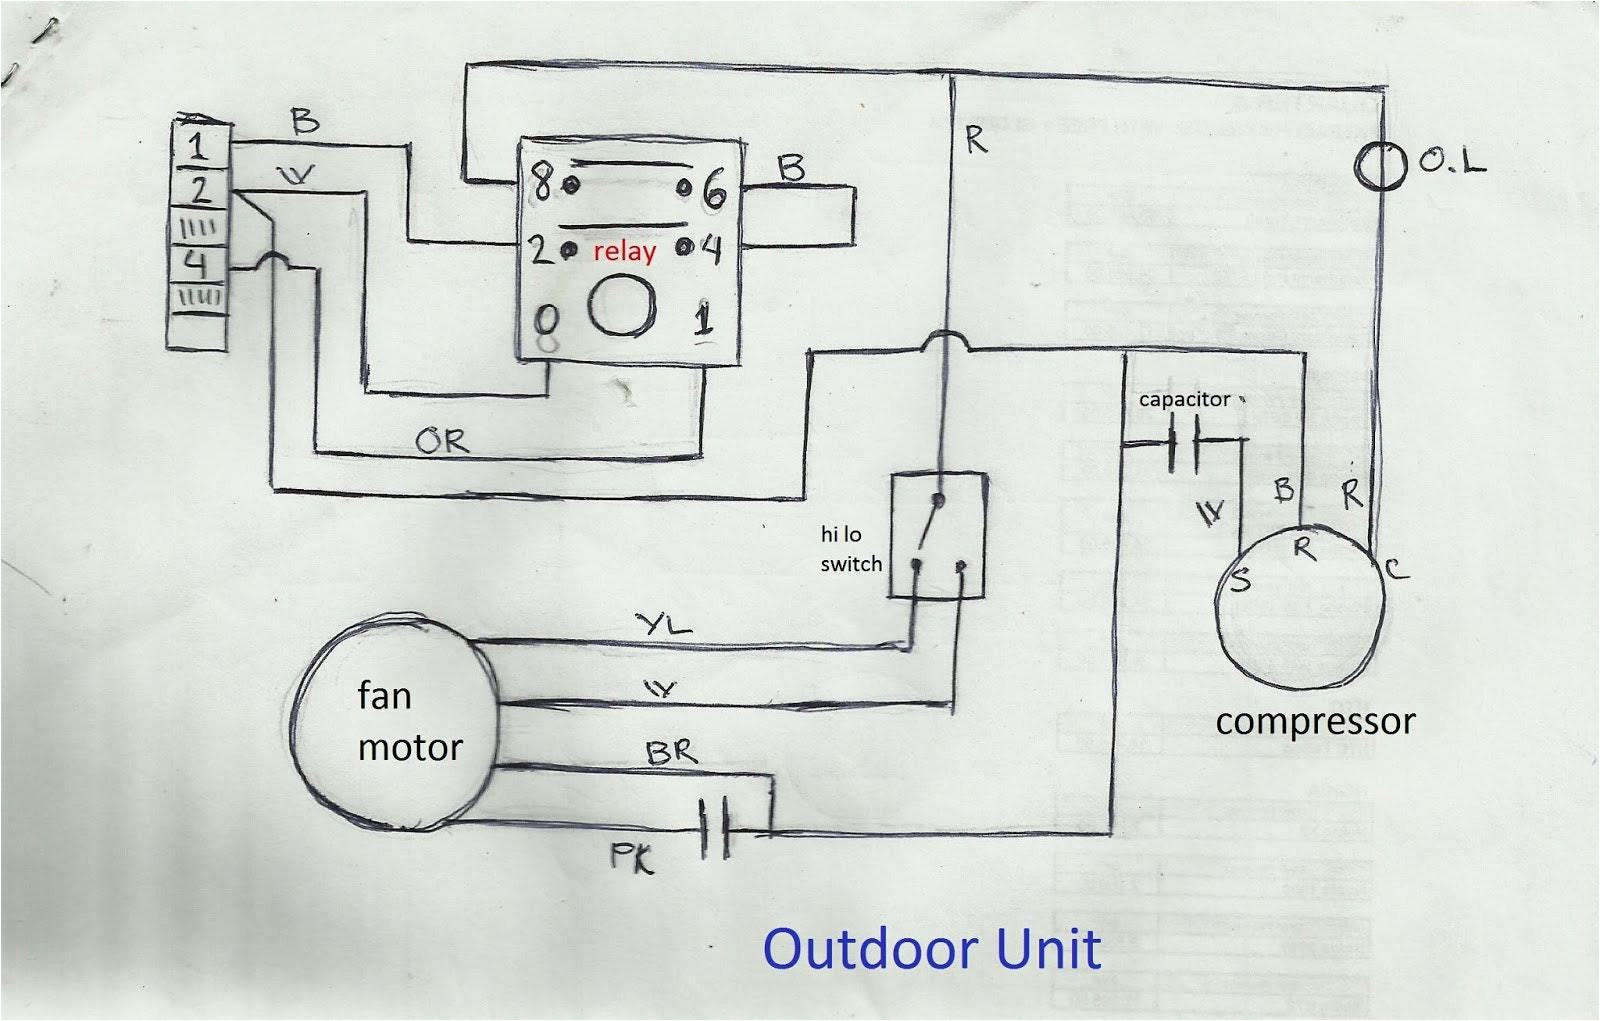 wiring diagram mini split fujitsu heat pump free download wiringfujitsu wiring diagram 16